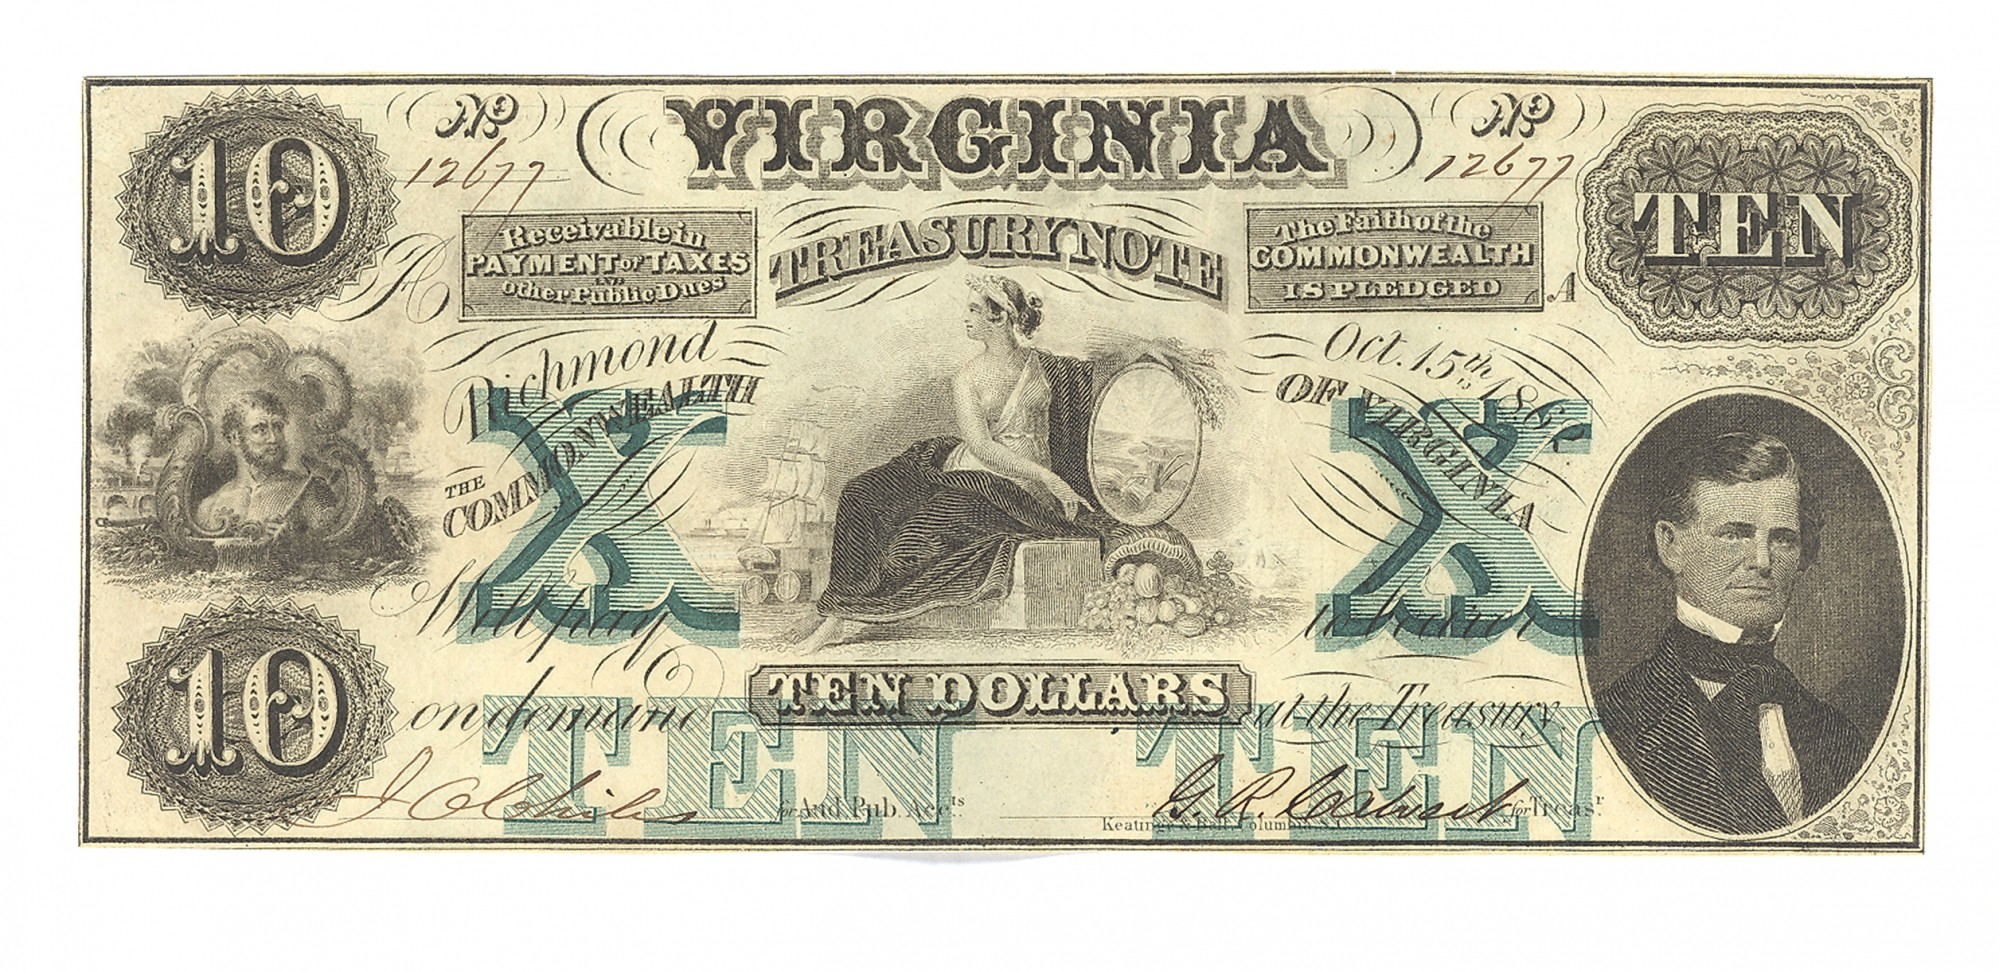 VIRGINIA TREASURY NOTE, RICHMOND, VIRGINIA $10 NOTE